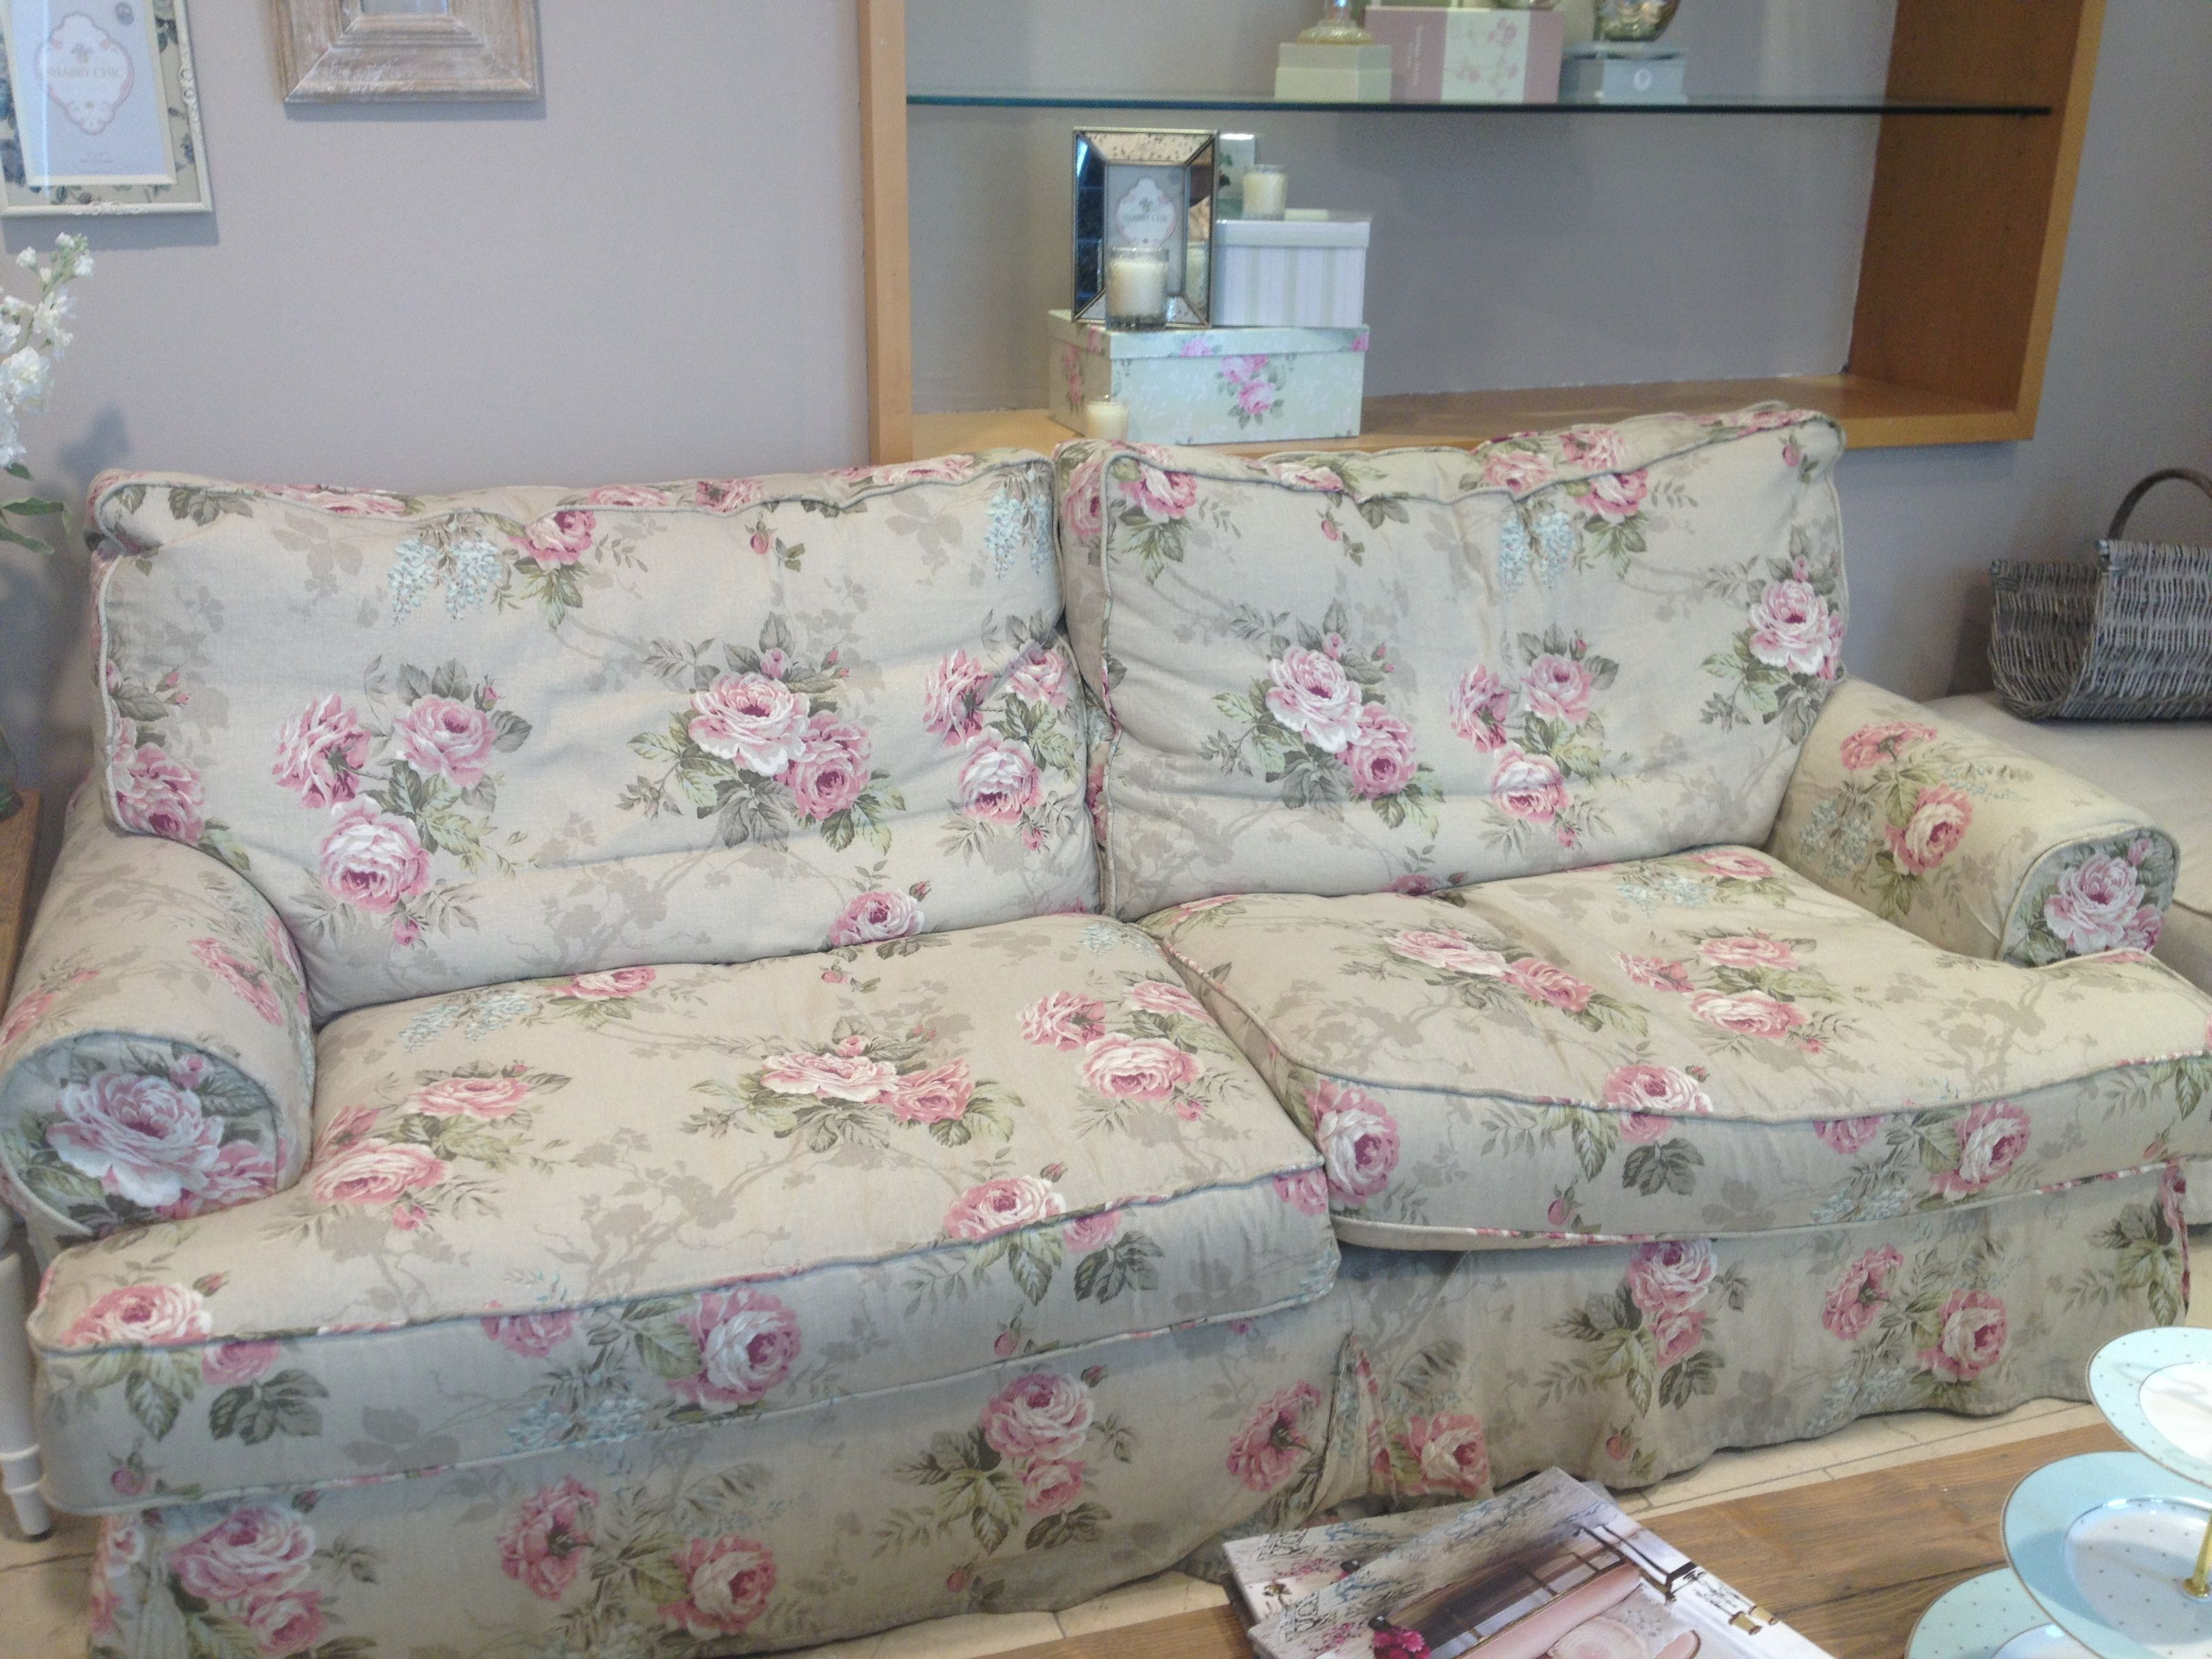 Shabby Chic Sofa House of Fraser | Country living | Pinterest ...